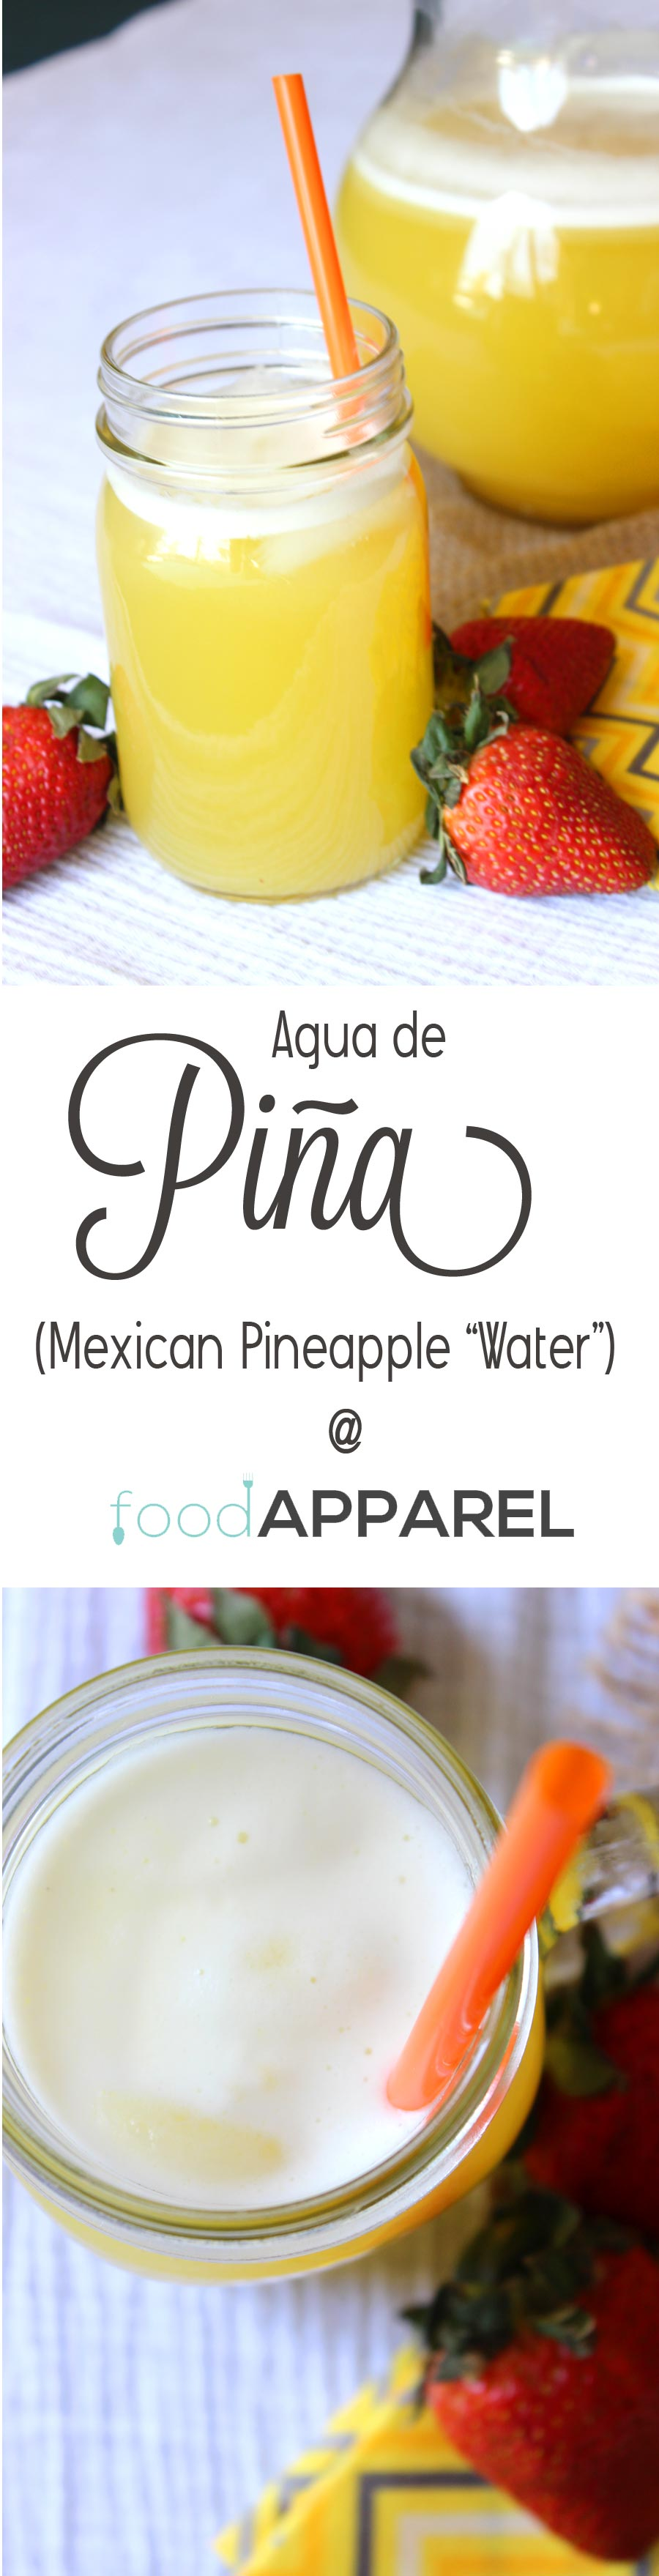 Agua de Pina (Mexican Pineapple Water). This drink is amazing and refreshing!